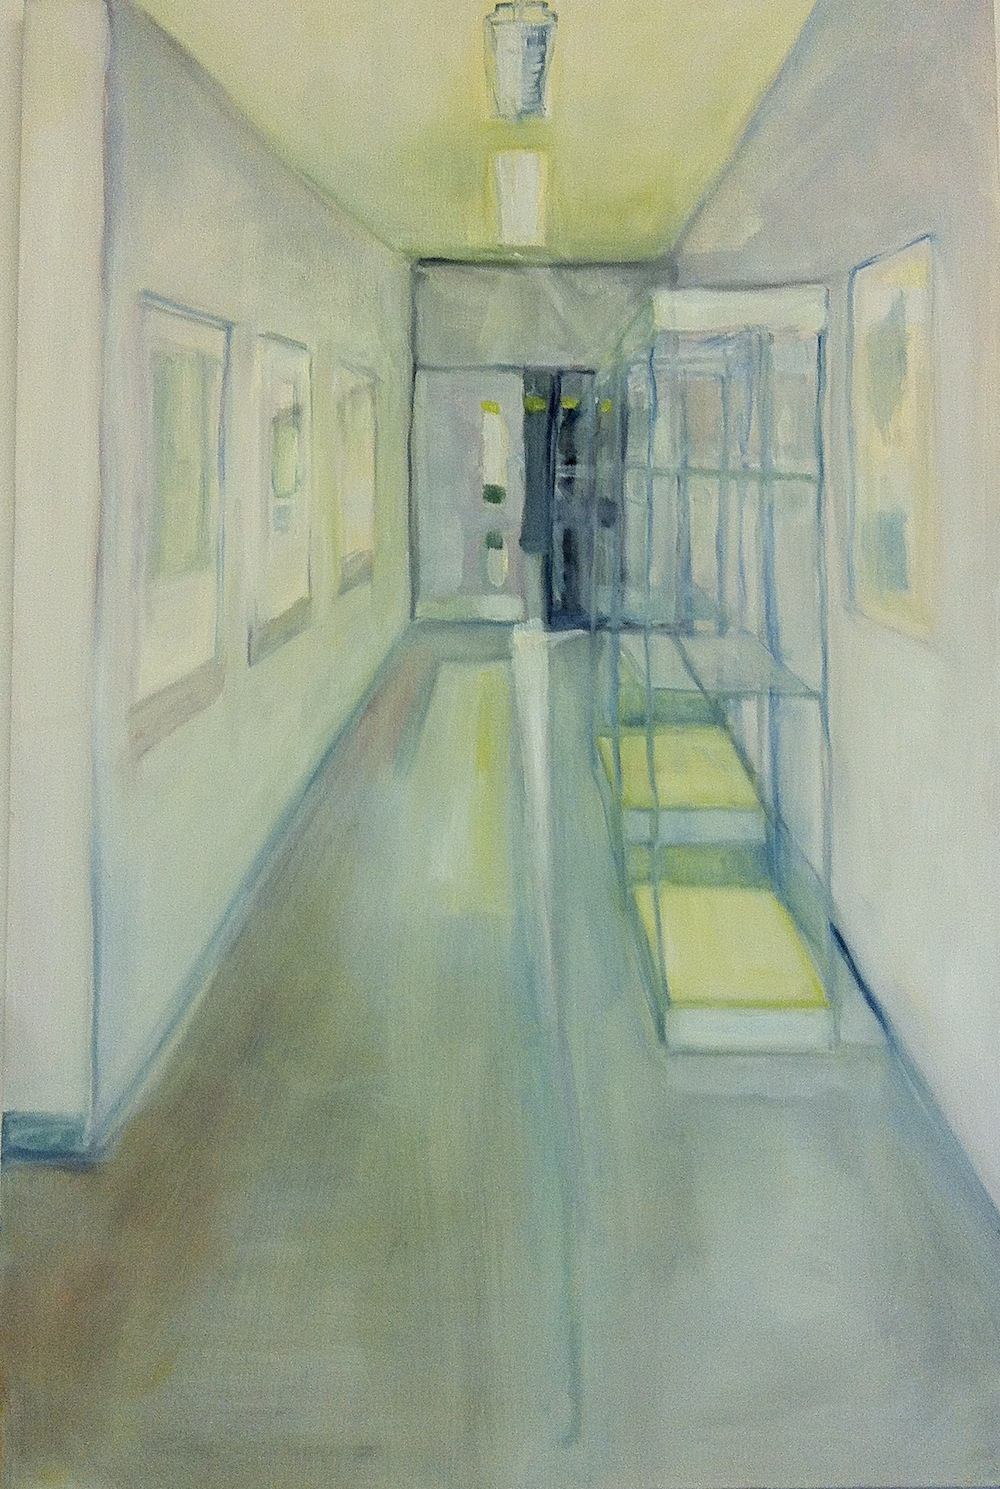 a painting of a corridor with doors at the end